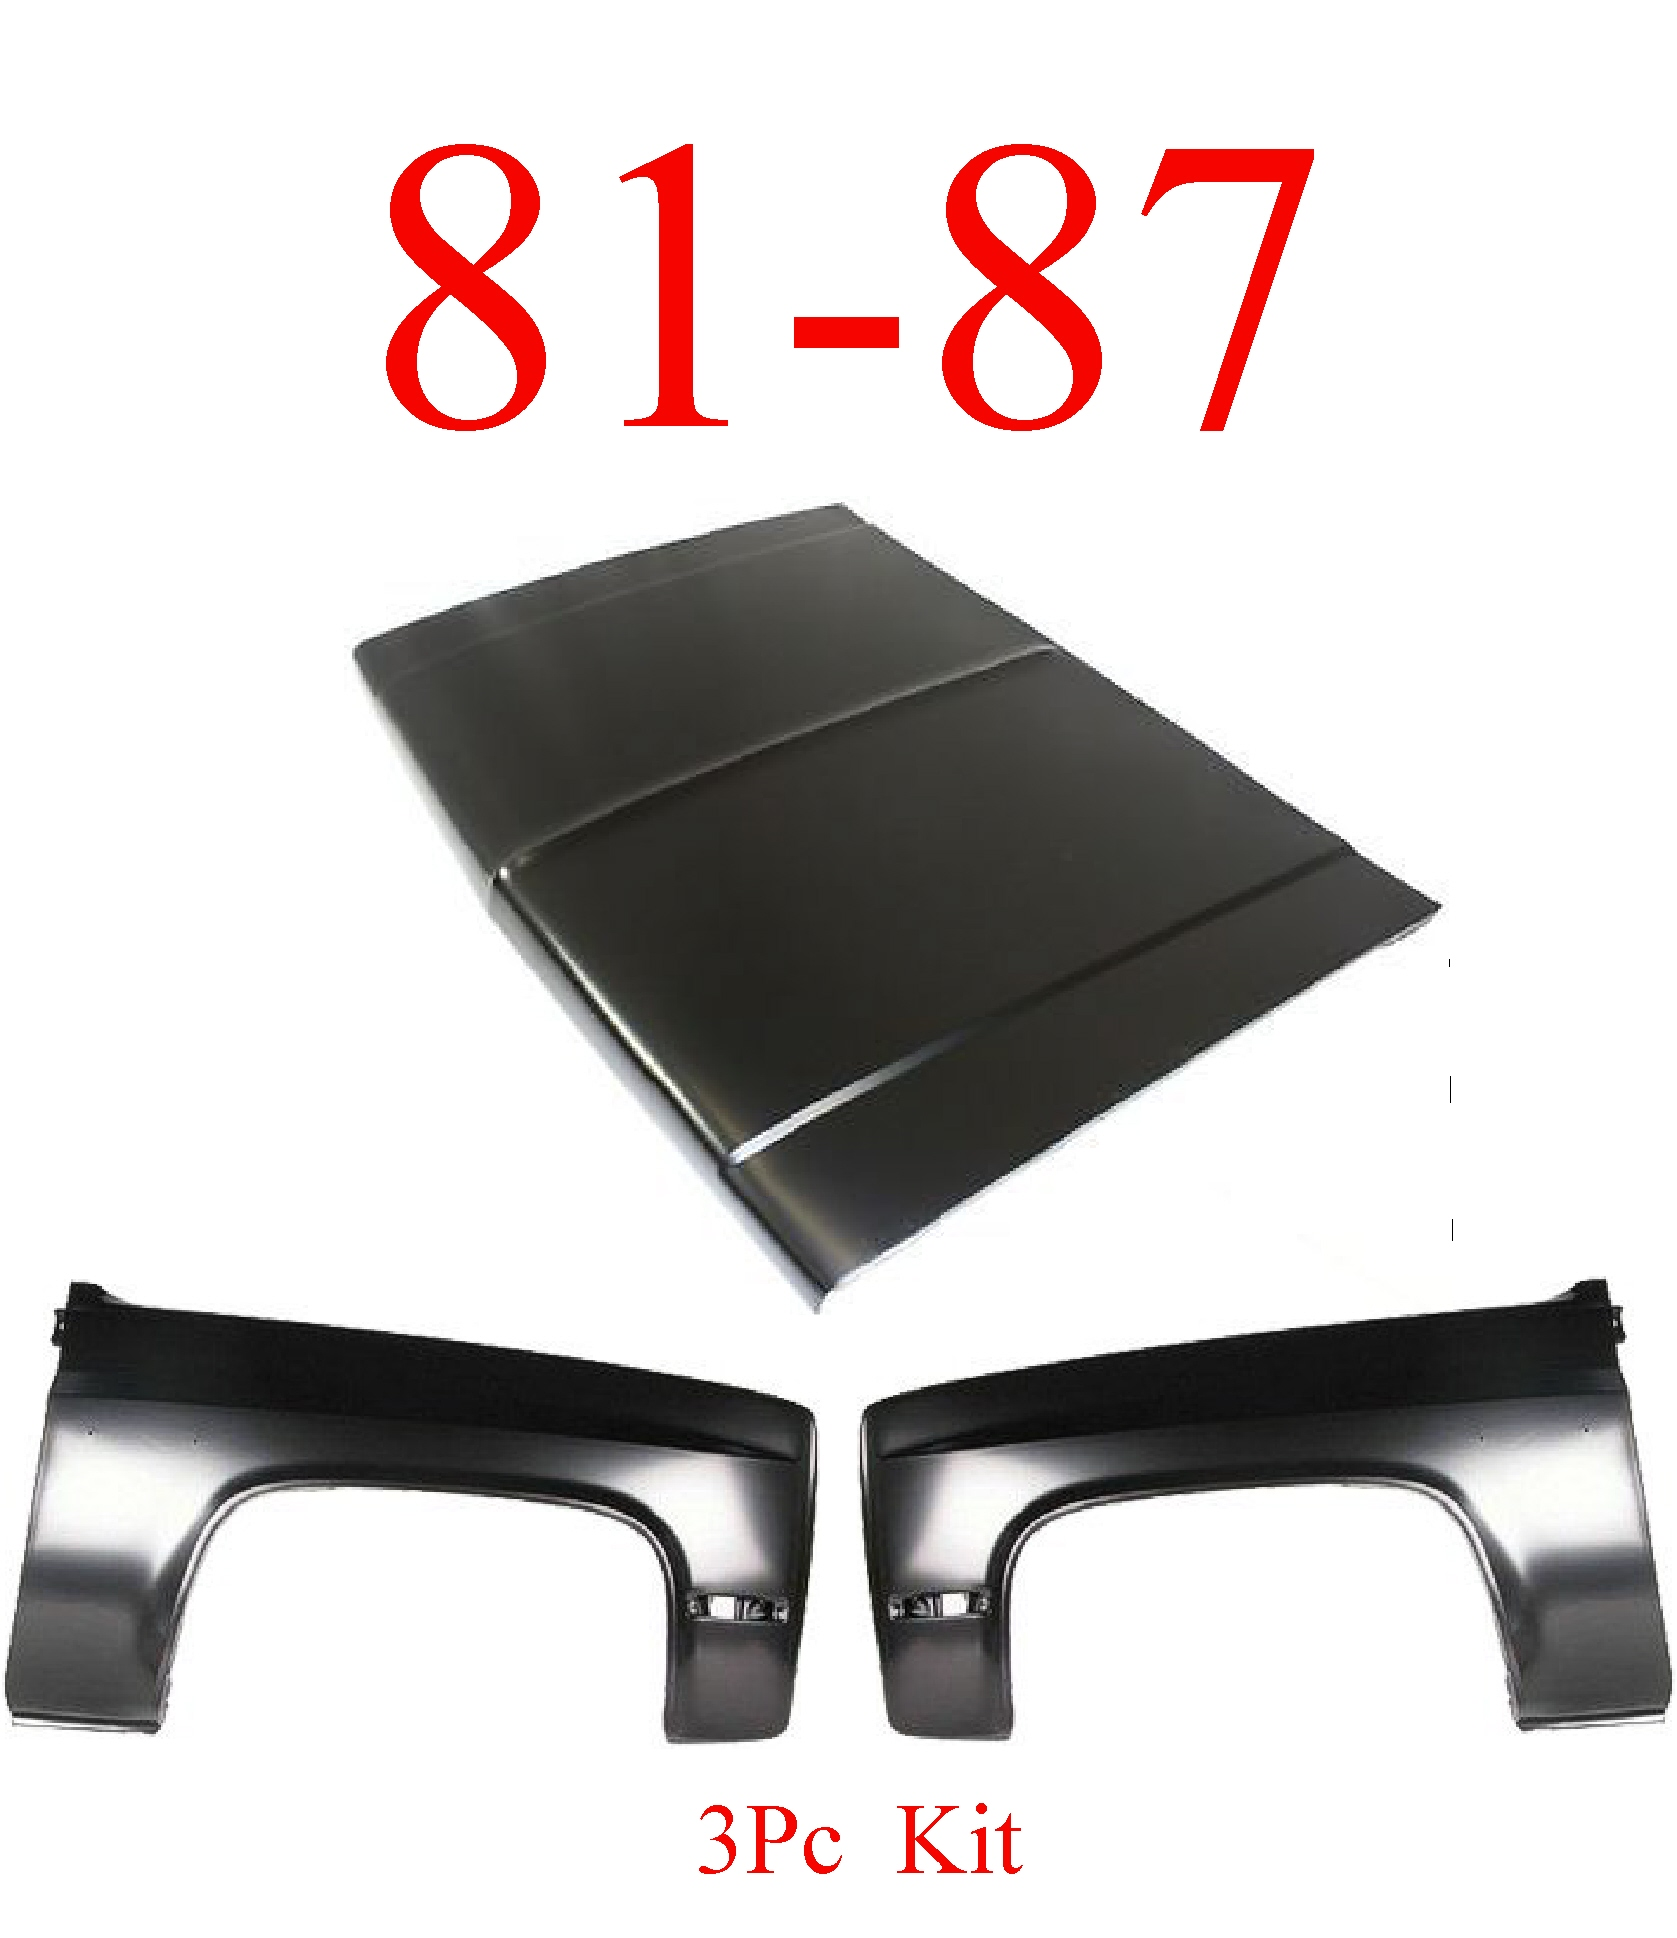 81-87 3Pc Chevy Steel Hood & Fenders